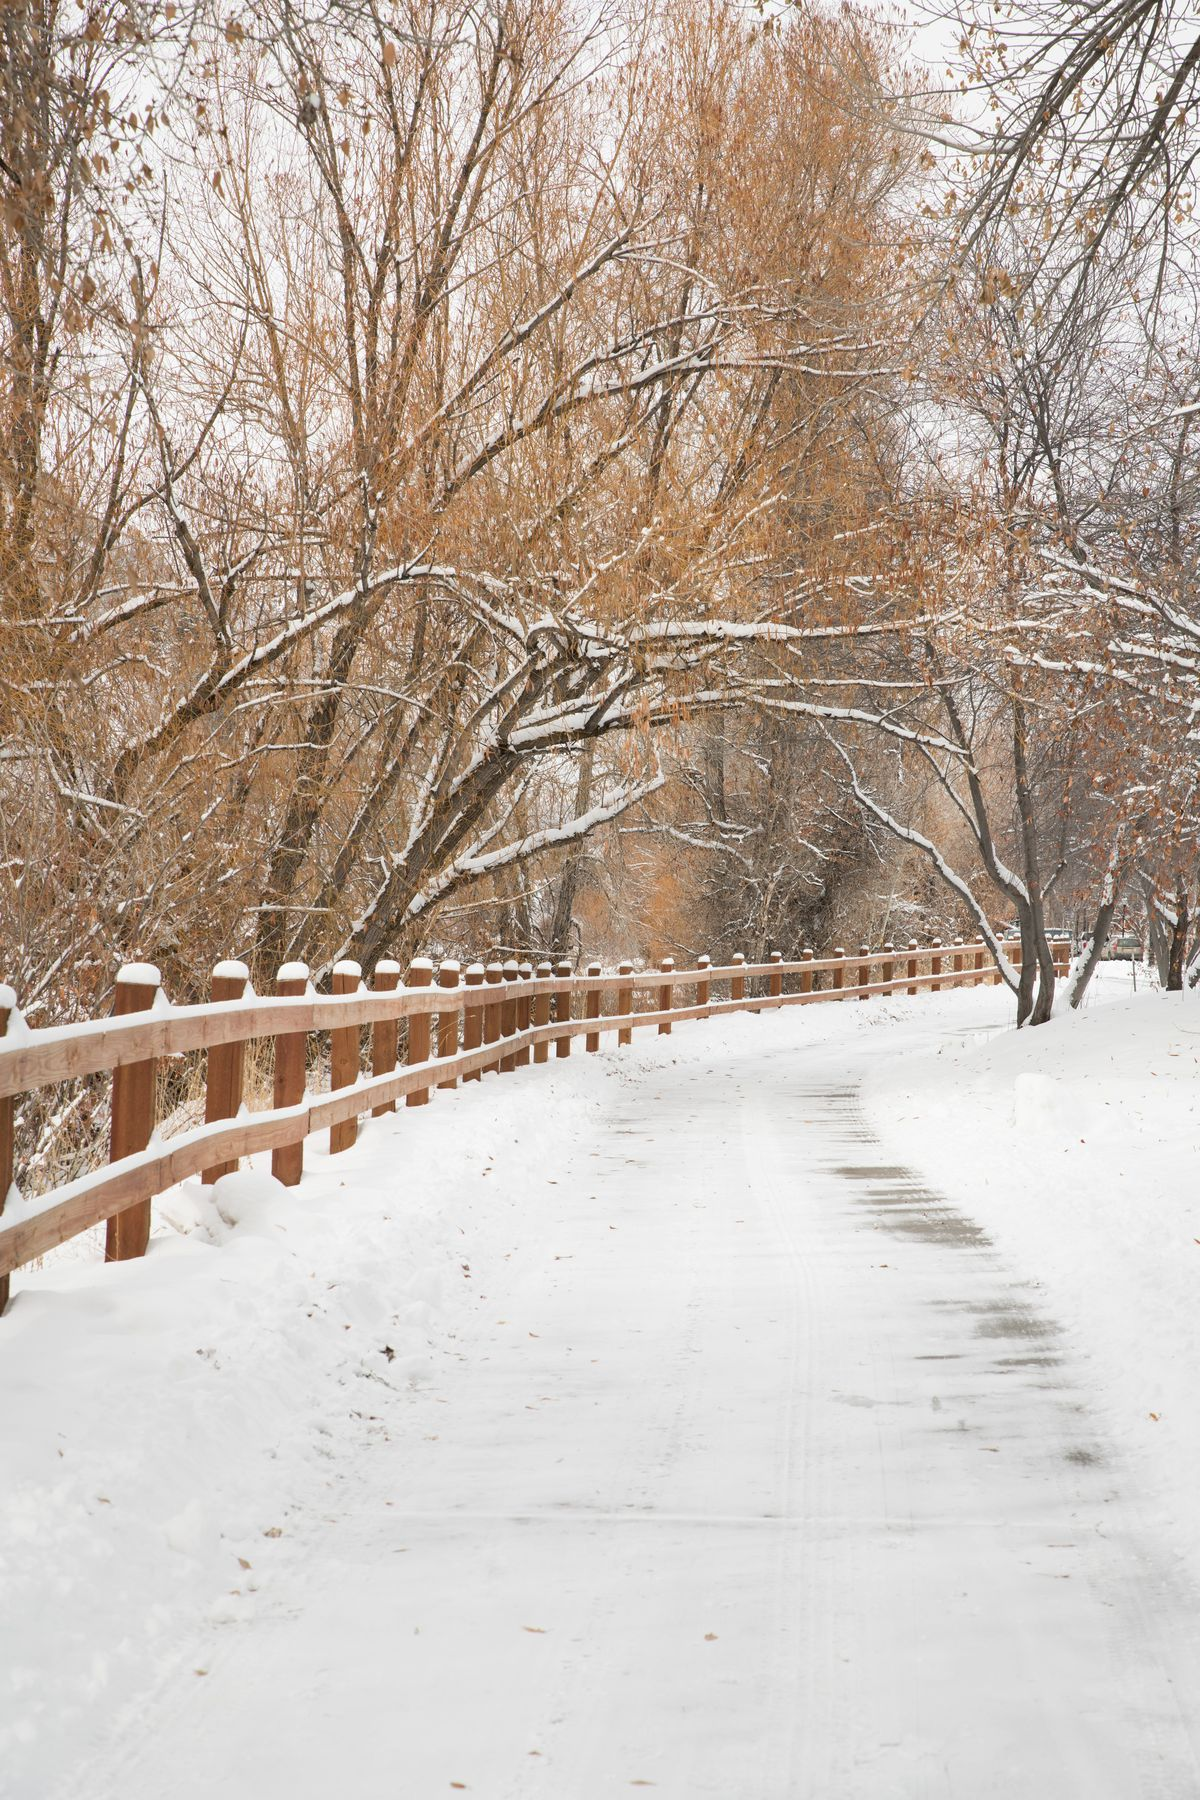 A snowy path with a wooden fence and leave-less trees draped around it.